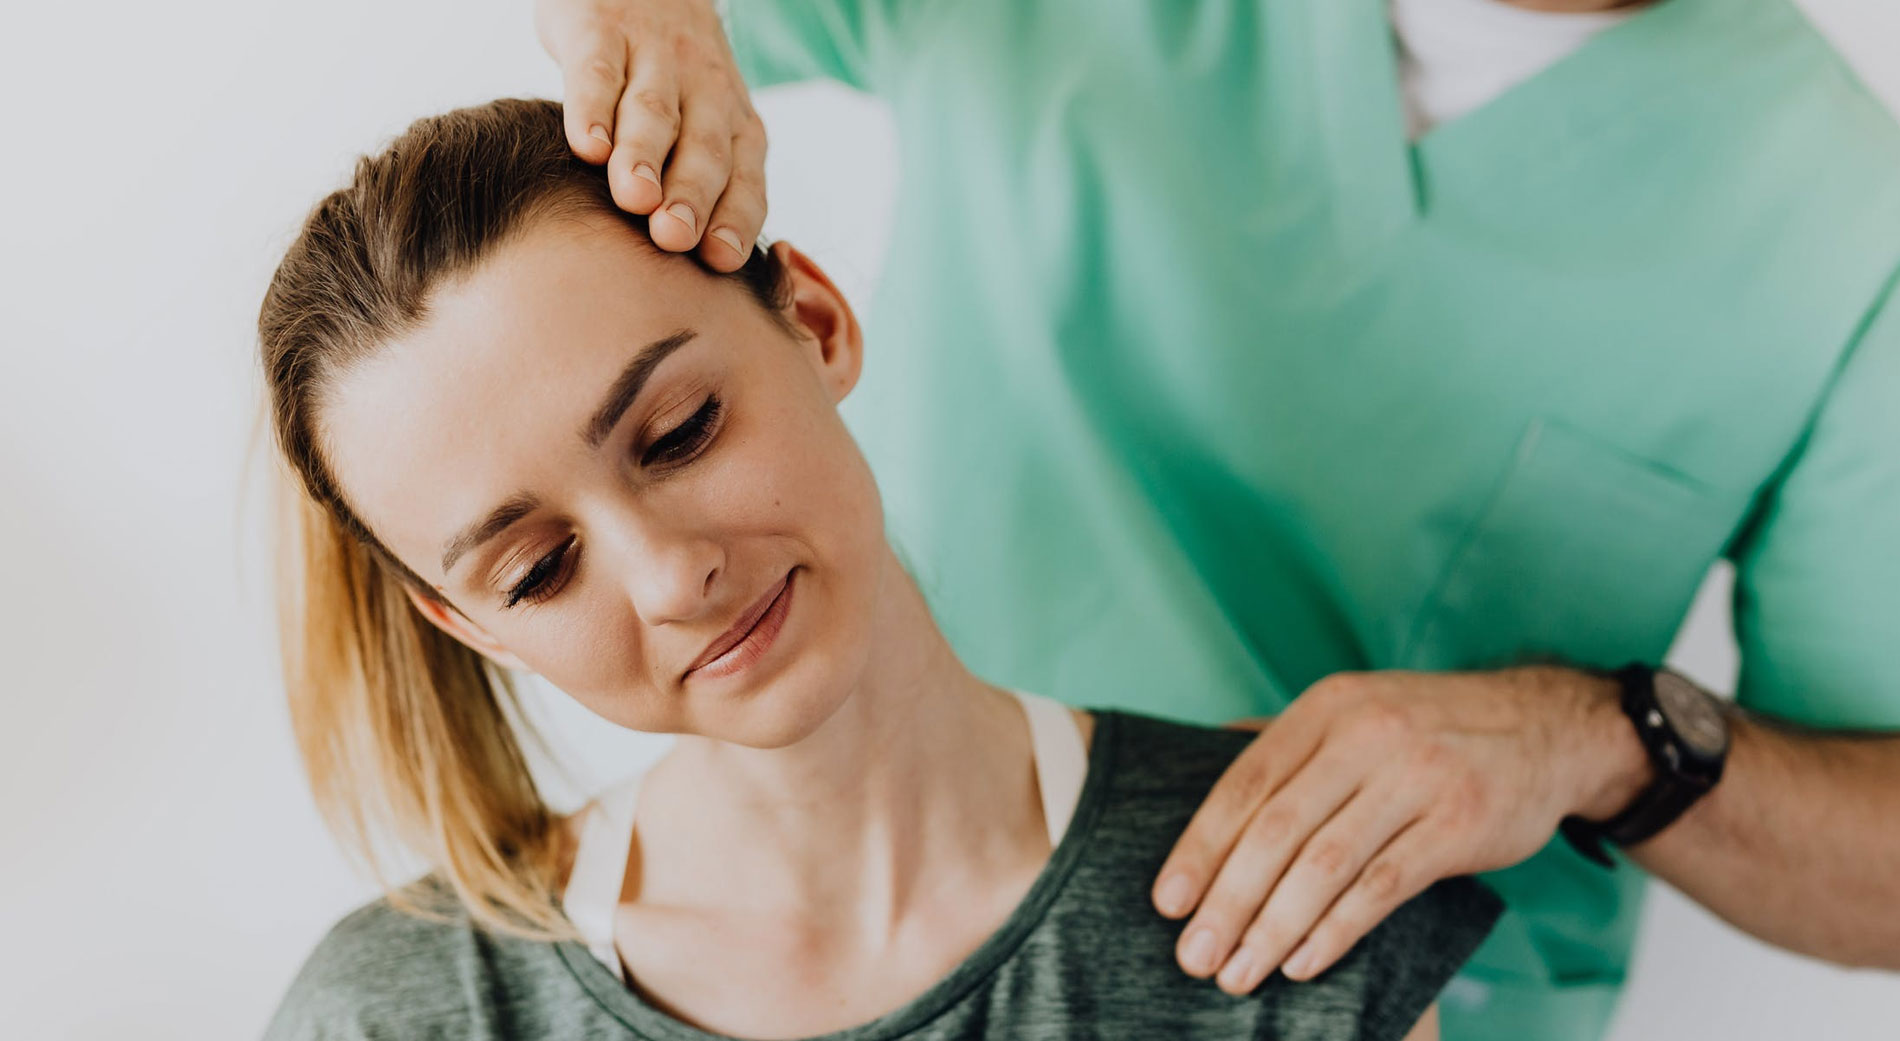 woman receiving treatment for shoulder injury